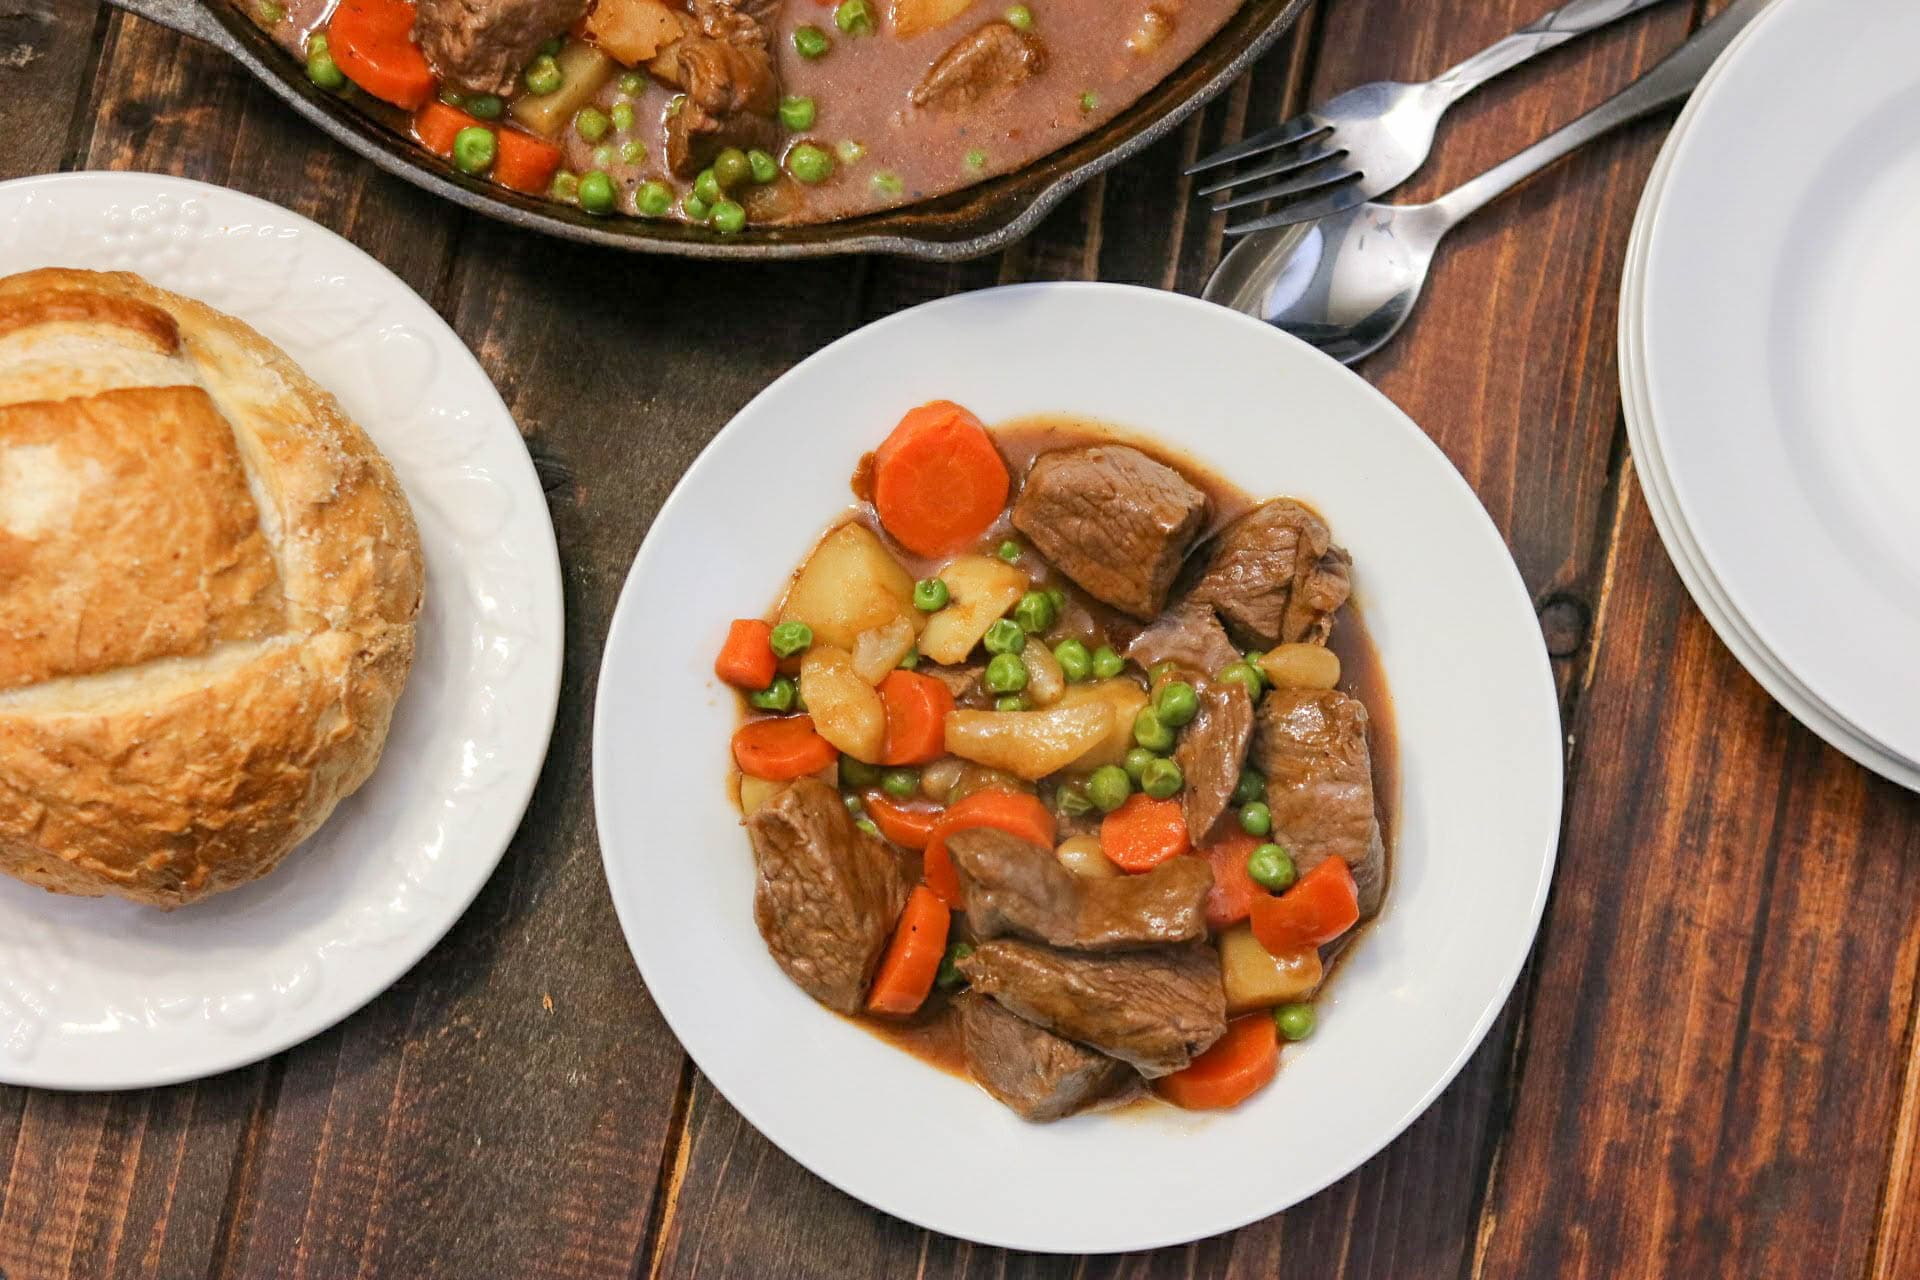 Overhead shot of beef and Guinness stew in white bowl with roll on white plate and remaining stew in cast iron skill on the side, all on a wood table.